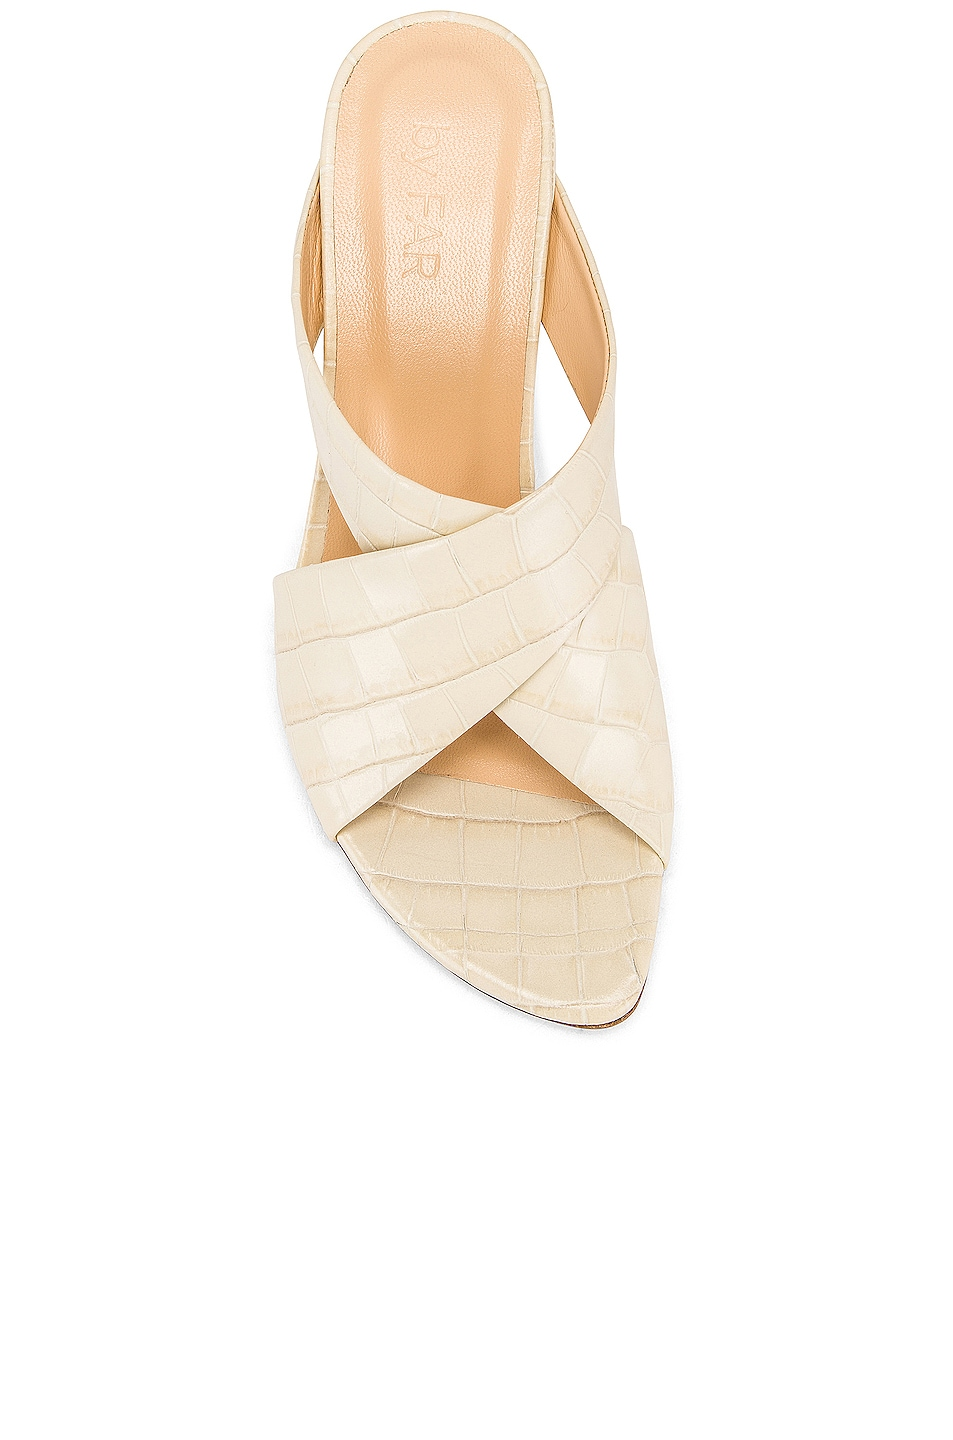 Image 4 of By Far Jaz Mule in Cream Croc